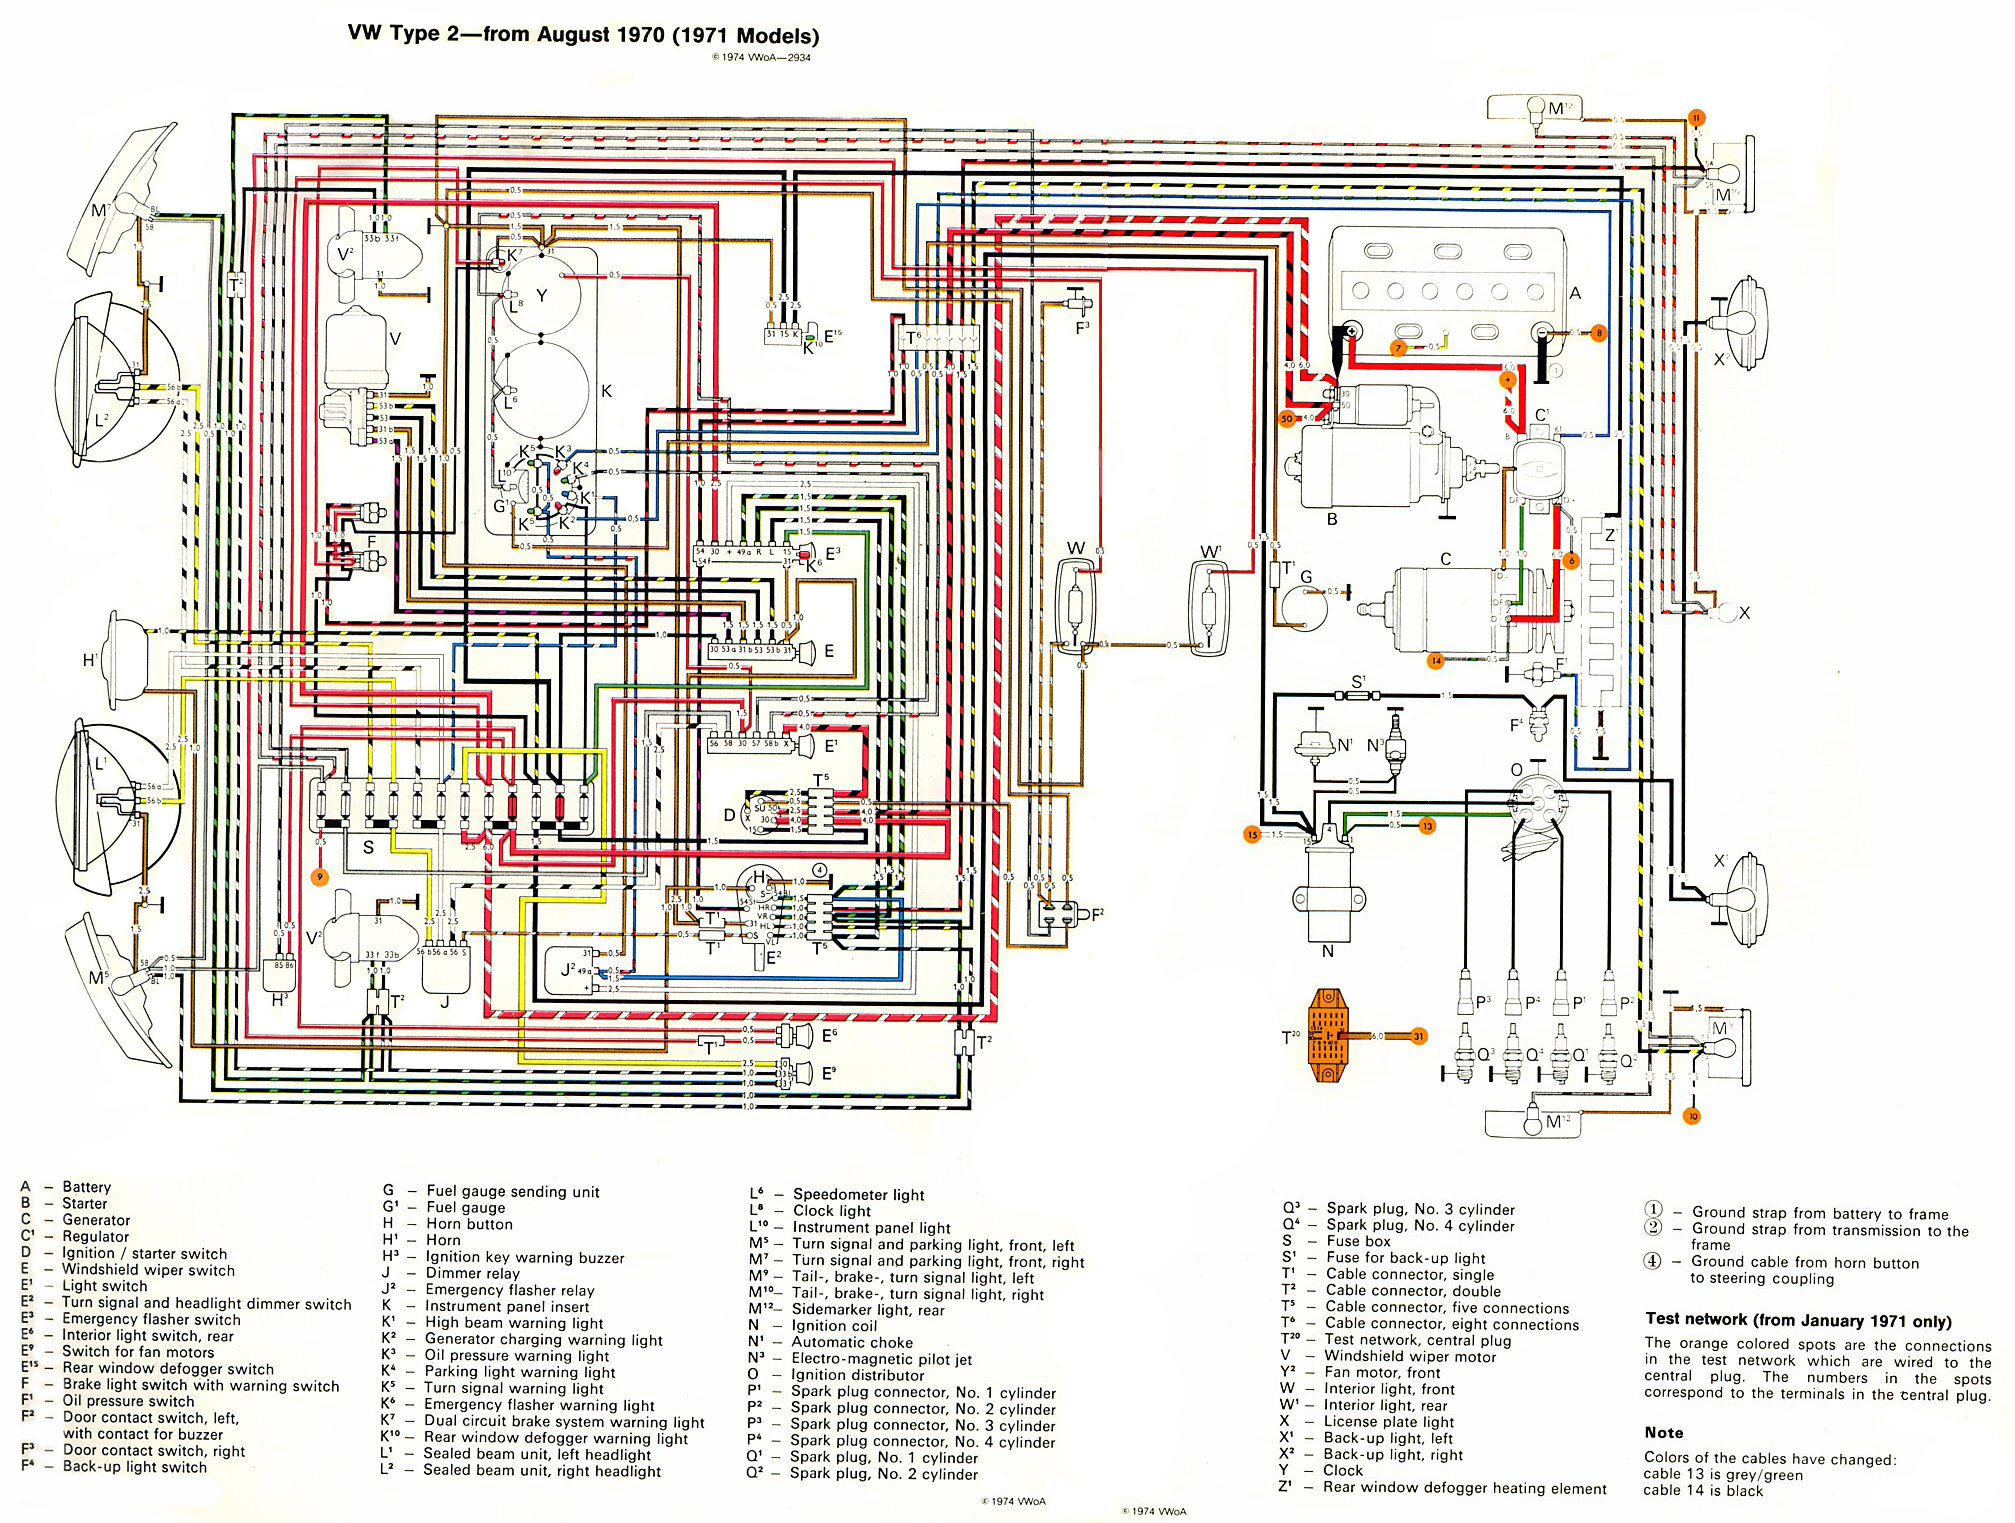 baybus_71_fixed thesamba com type 2 wiring diagrams vw golf 3 electrical wiring diagram at mifinder.co